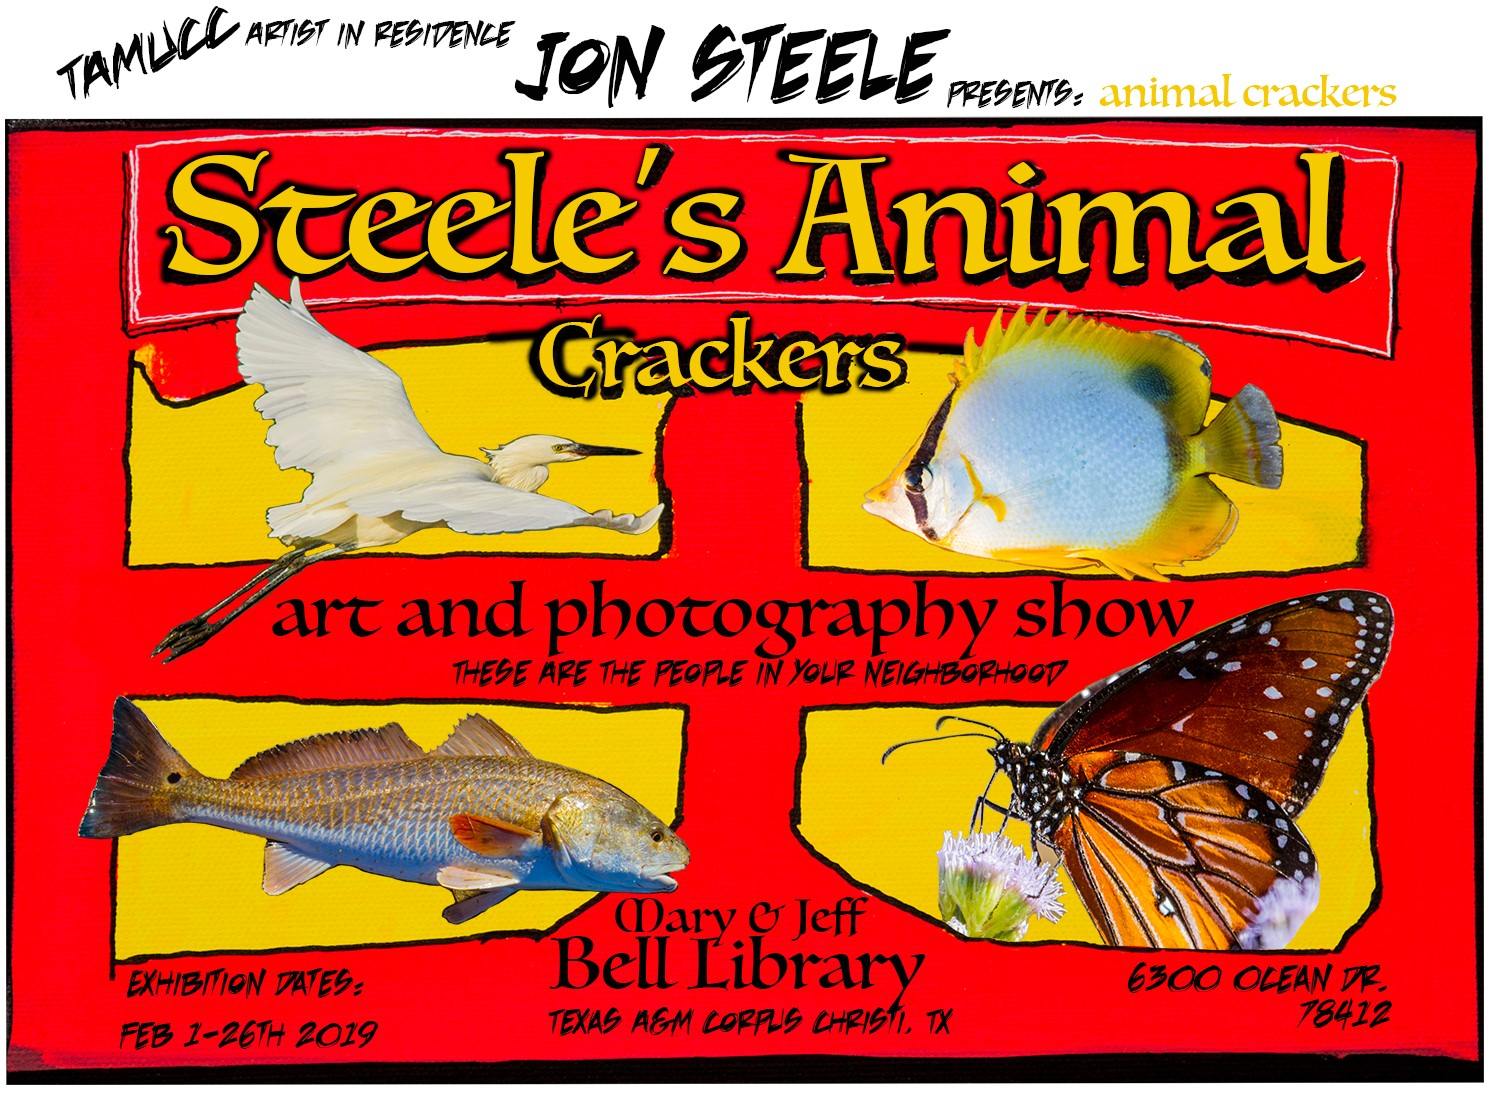 Jon Steele's Animal Crackers